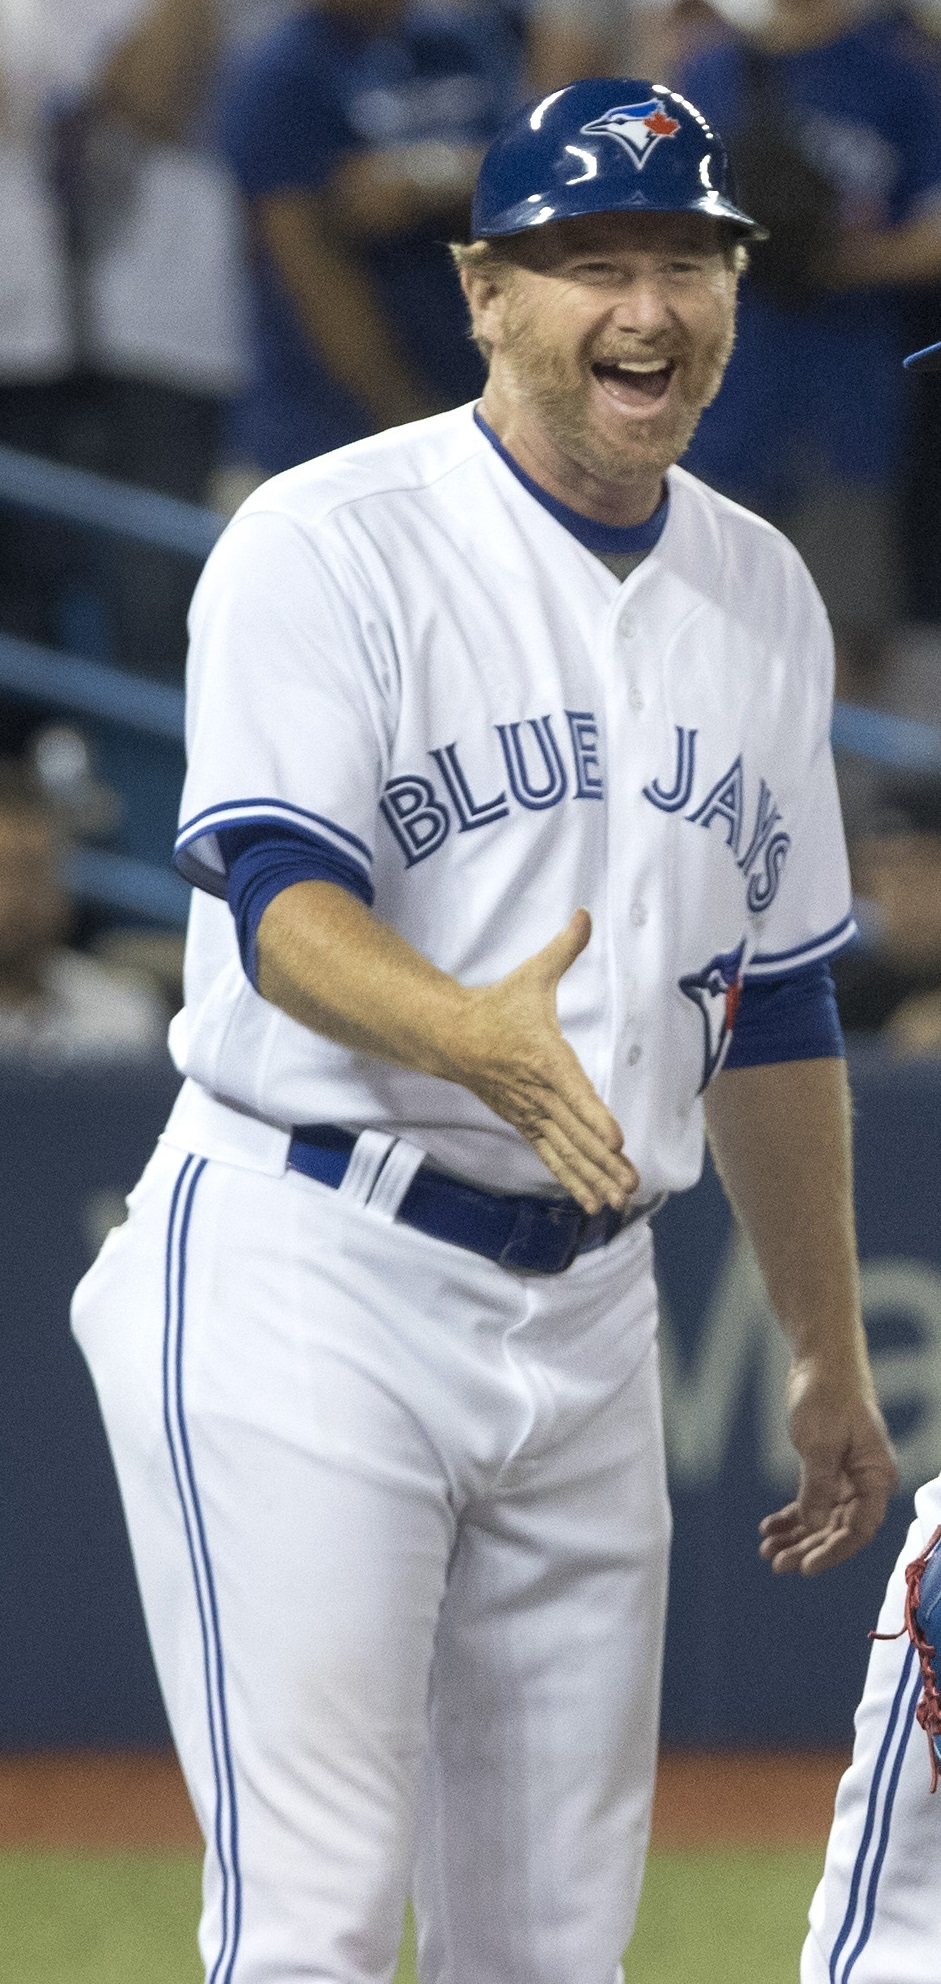 762180219b4 We are excited to announce that 2012 Hall of Famer and current Toronto Blue  Jays 1st base coach Tim Leiper will be joining the panel on stage for Pitch  ...